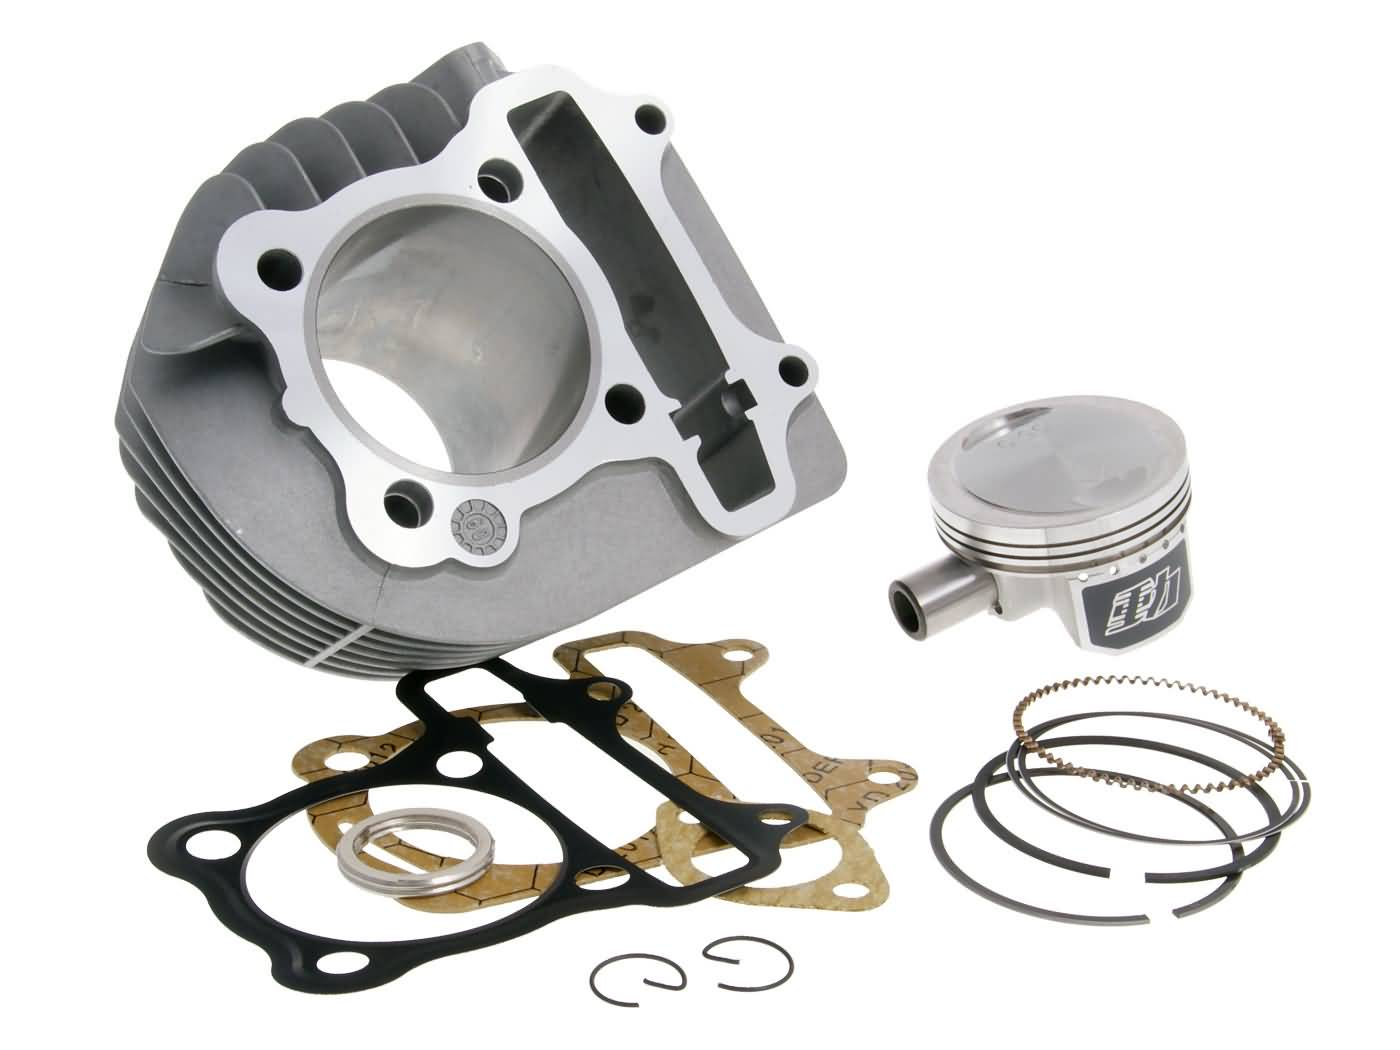 UK GY6 SUMP PLUG STRAINER O RING KIT for KYMCO Xciting 250 500 Movie XL 125